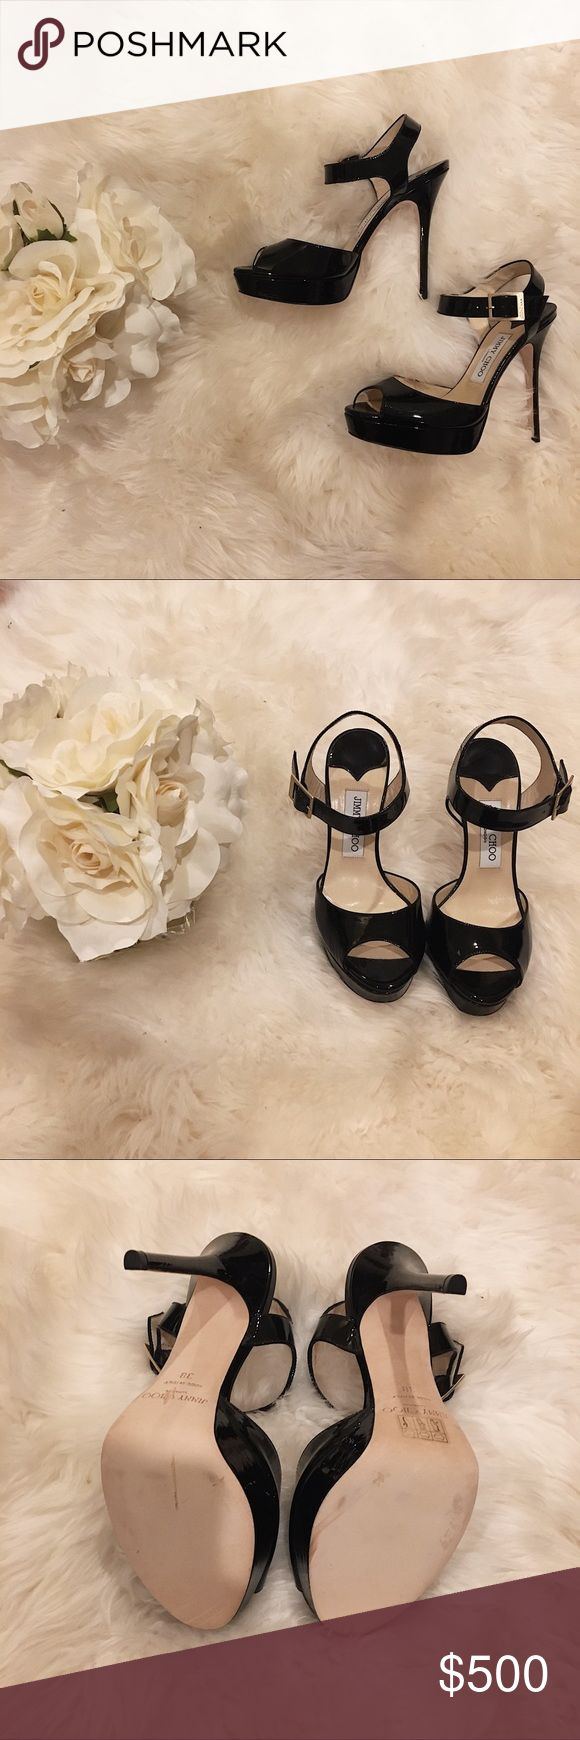 Jimmy Choo 'Raven' Patent Heels. Never worn. 100% authentic black patent heeled sandals by Jimmy Choo. Jimmy Choo Shoes Heels